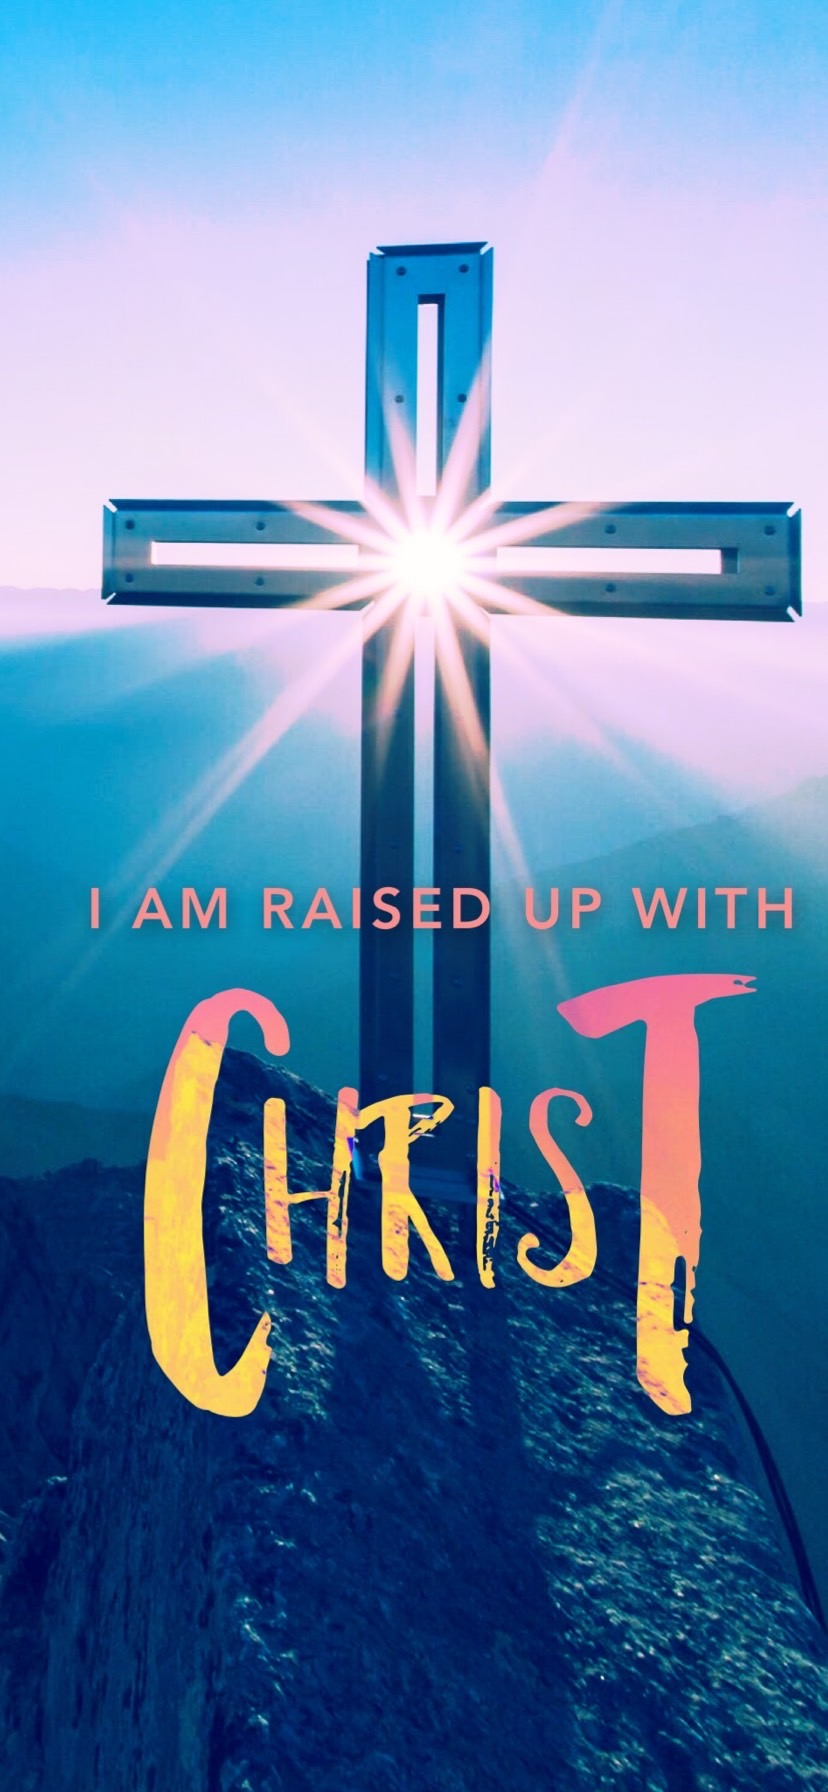 Wallpaper - I Am raised up with Christ